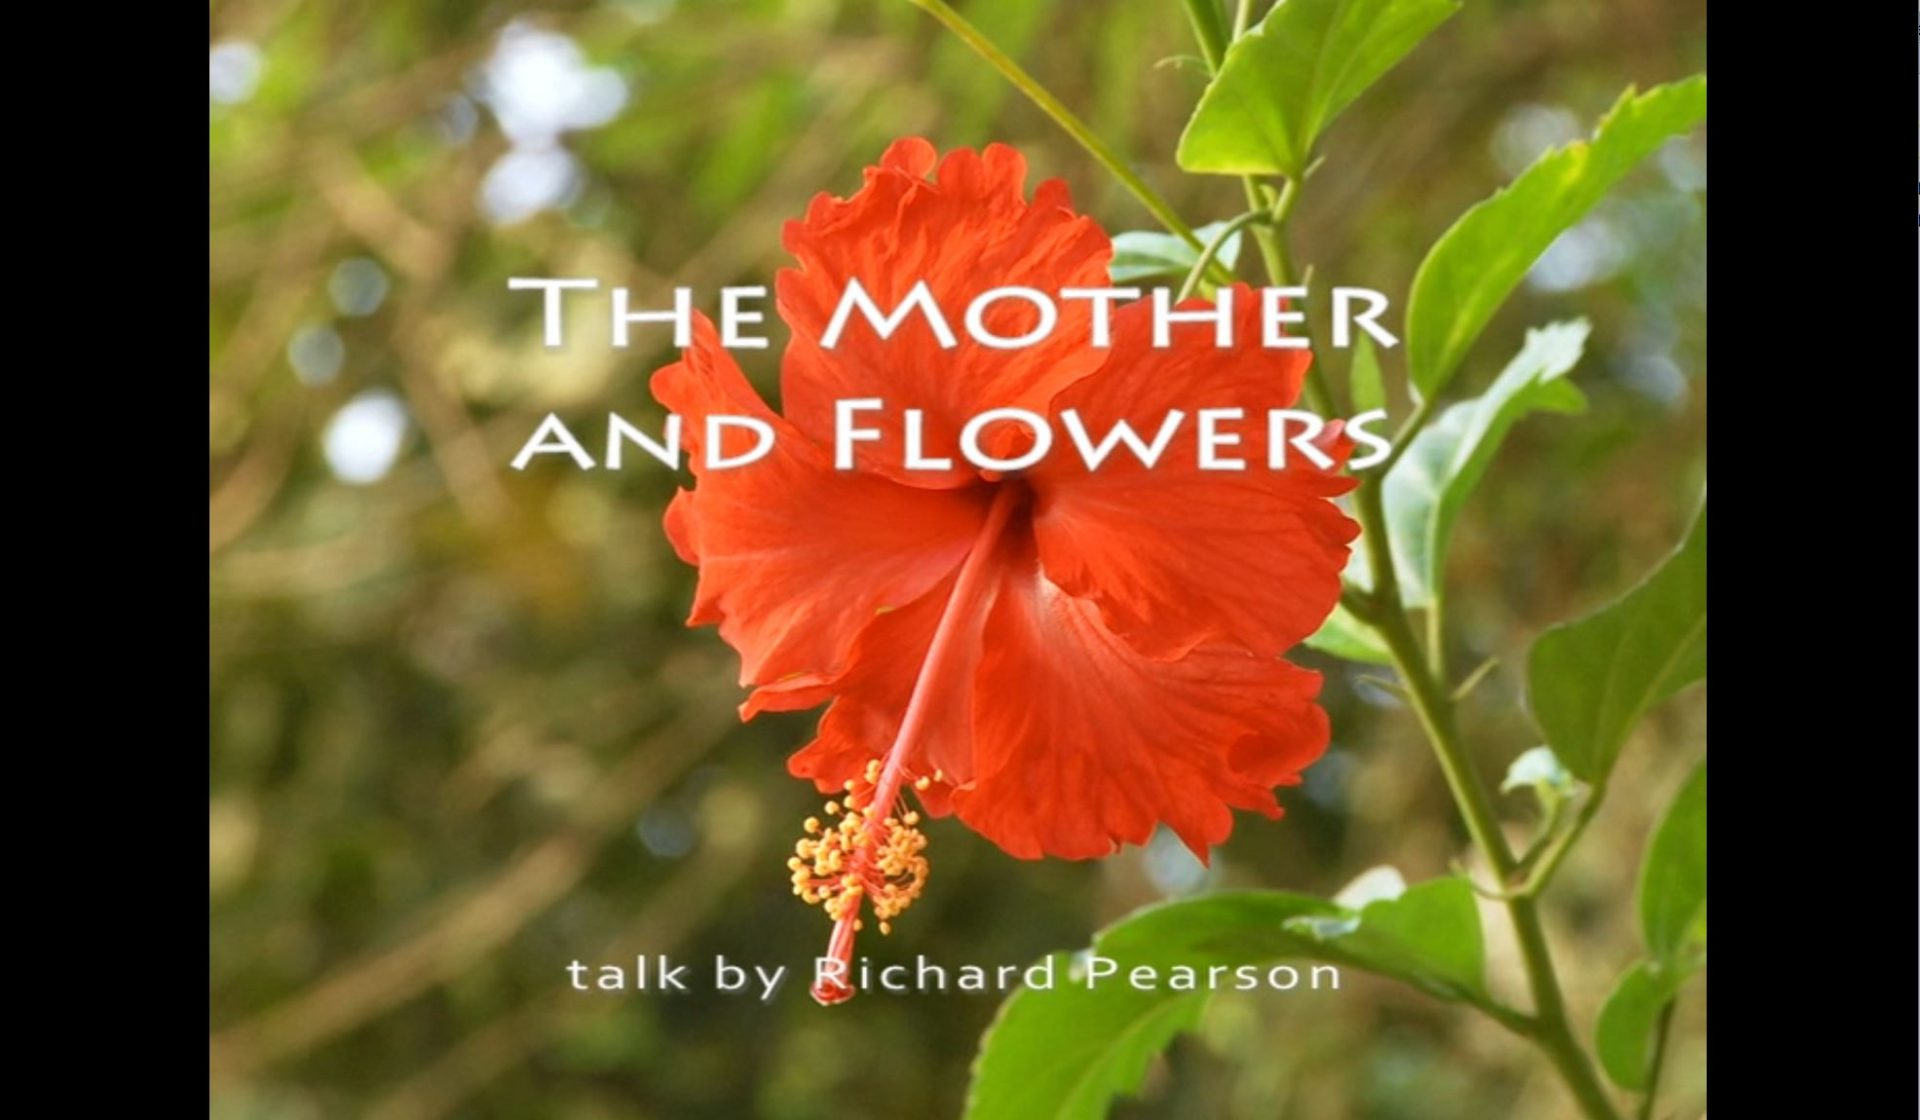 The Mother and Flowers